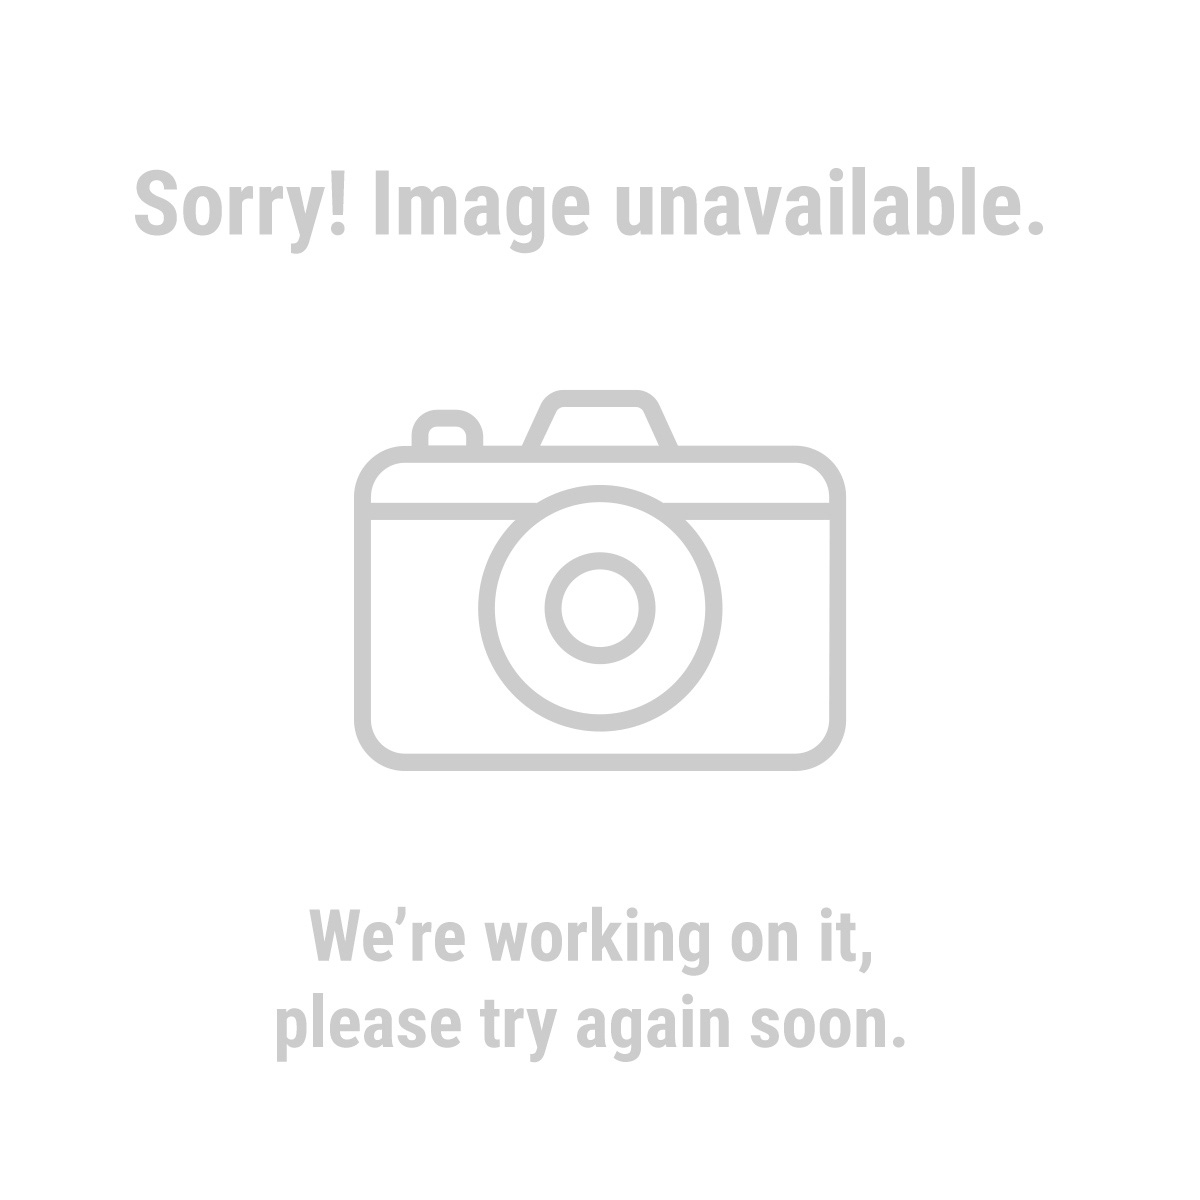 Haul-Master® 63101 Submersible Trailer Light - Left Side